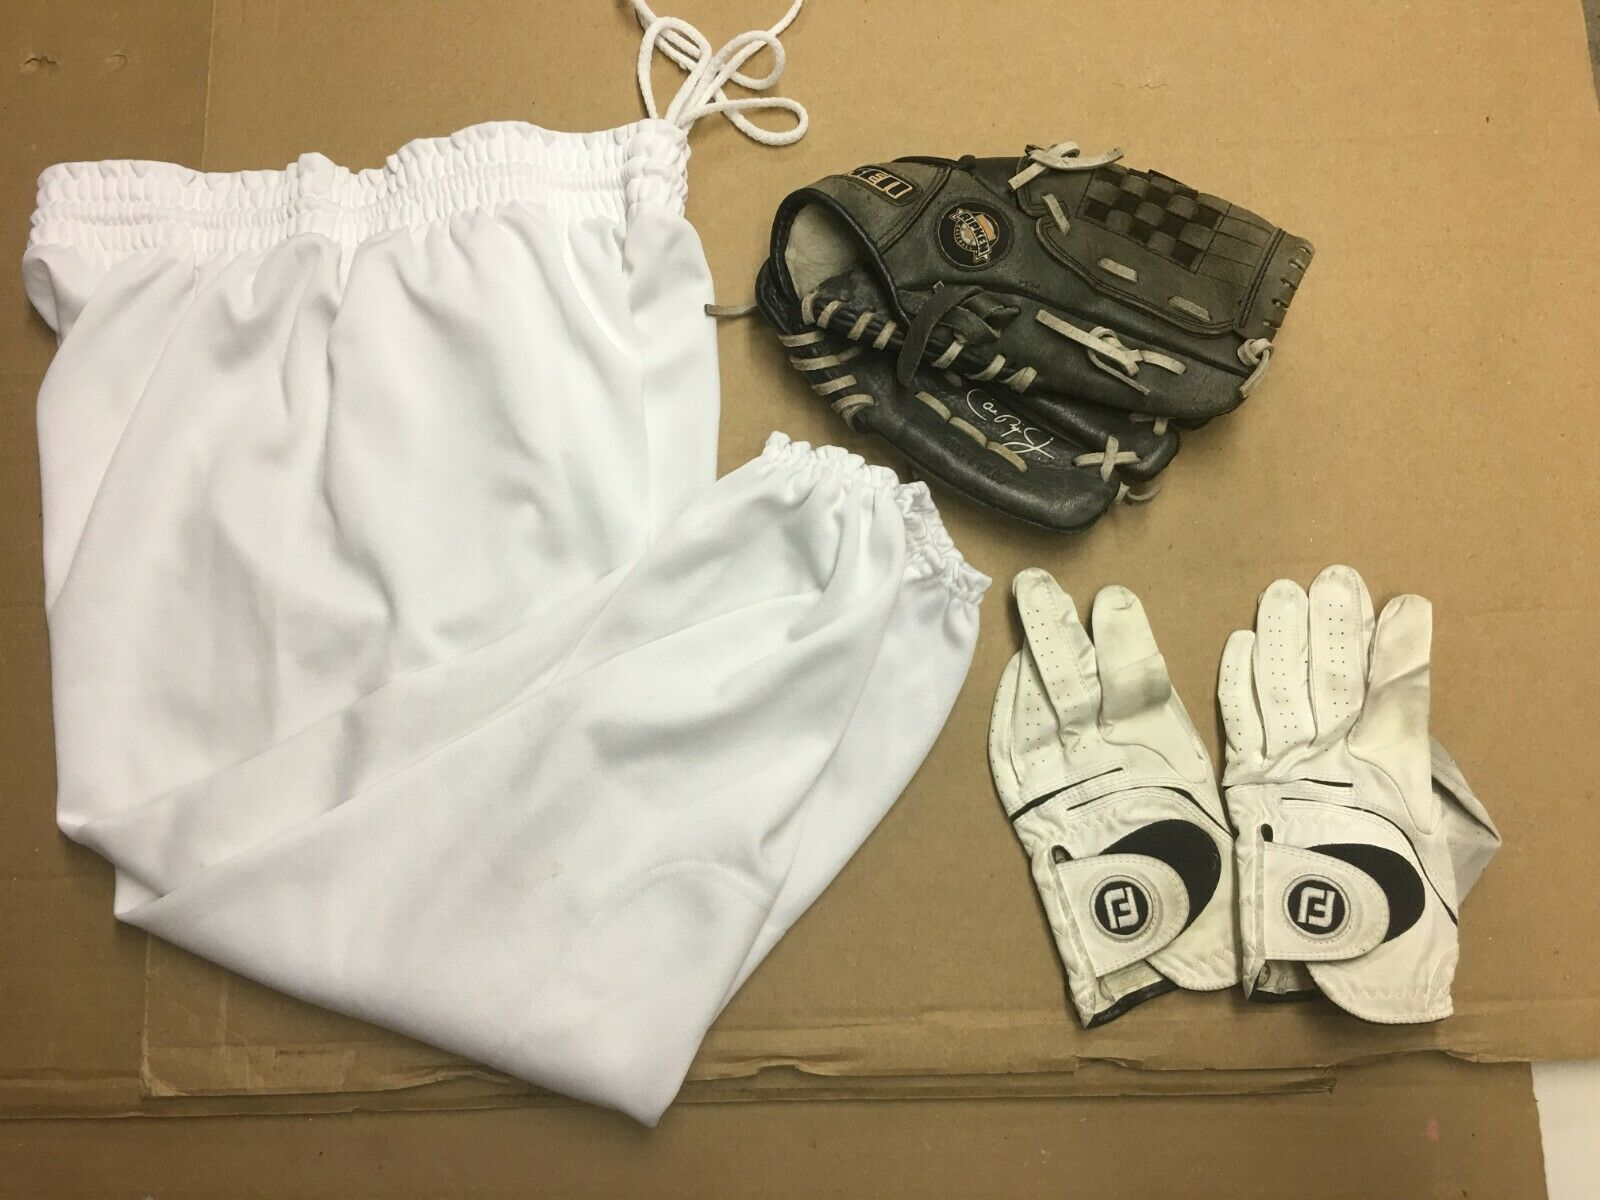 Youth Baseball Pants Size XL + Gloves + Baseball Glove (Lot of 3) #YP-59 South Athletic